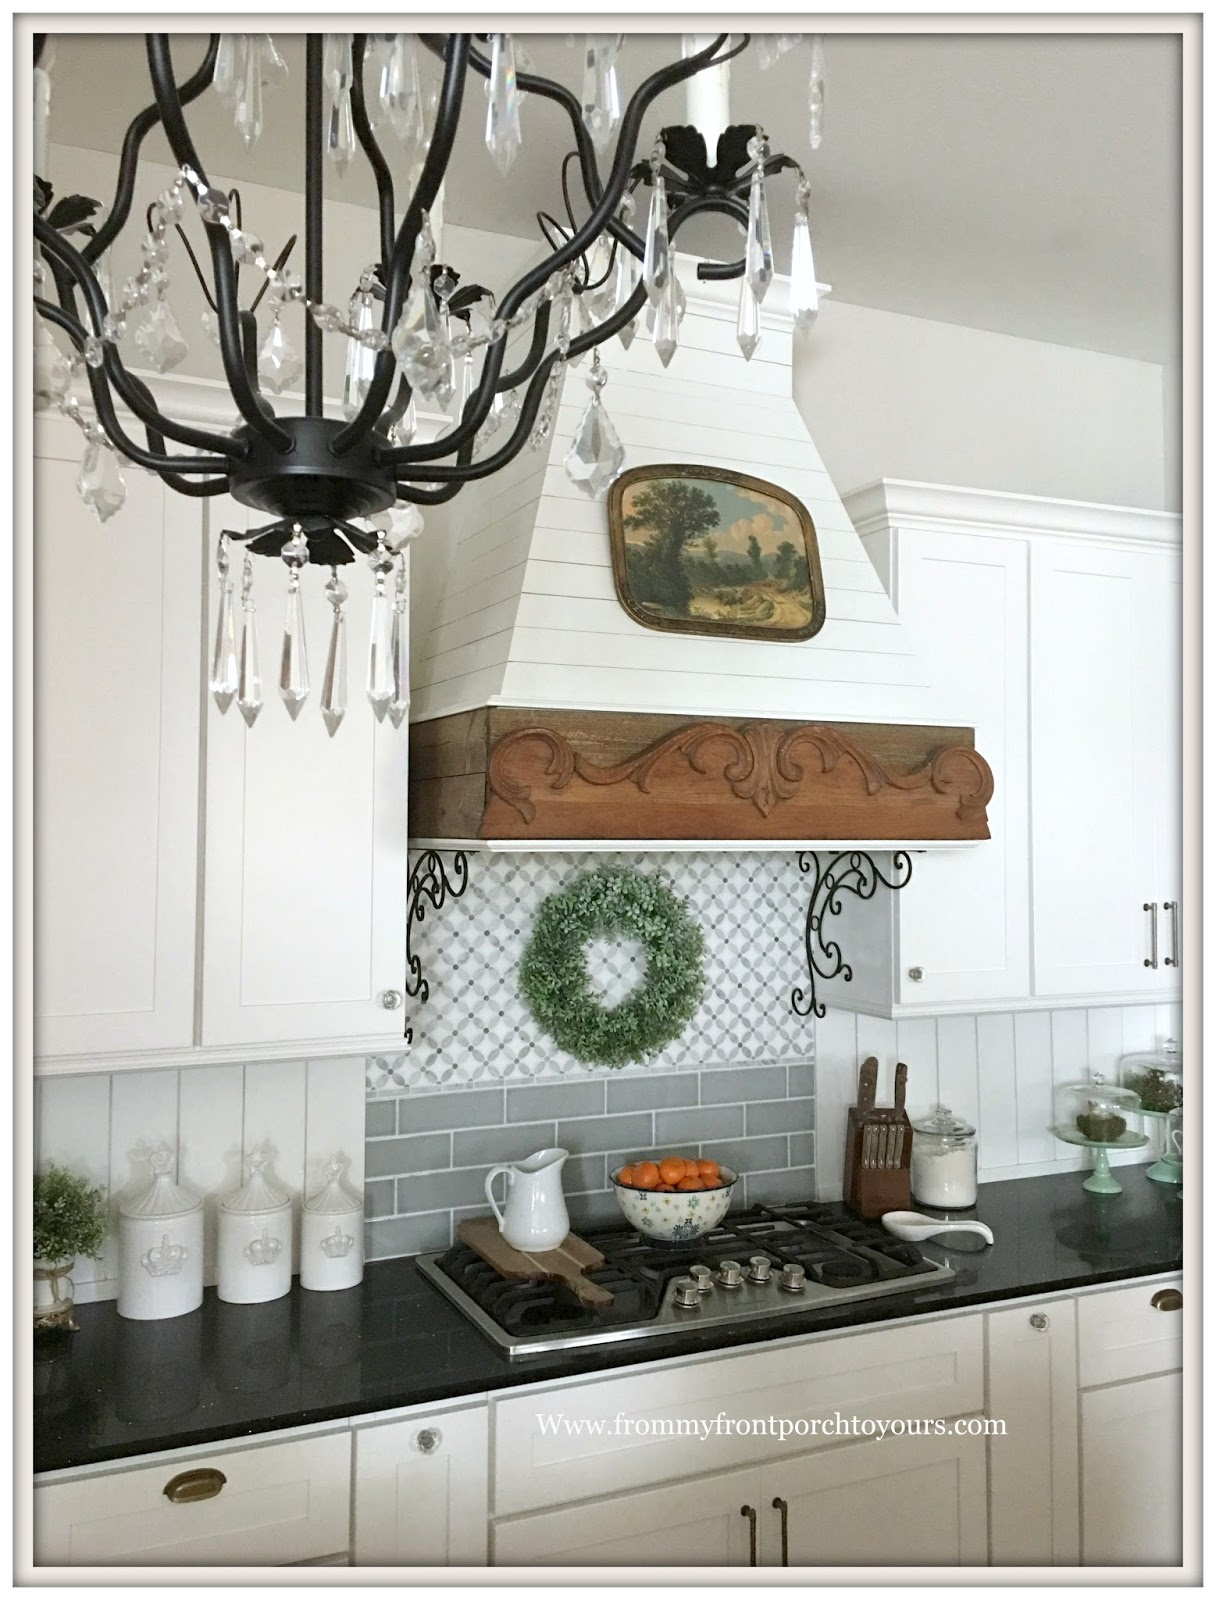 Country Kitchen Range Hoods Sink Drain Strainer From My Front Porch To Yours Simple Winter French